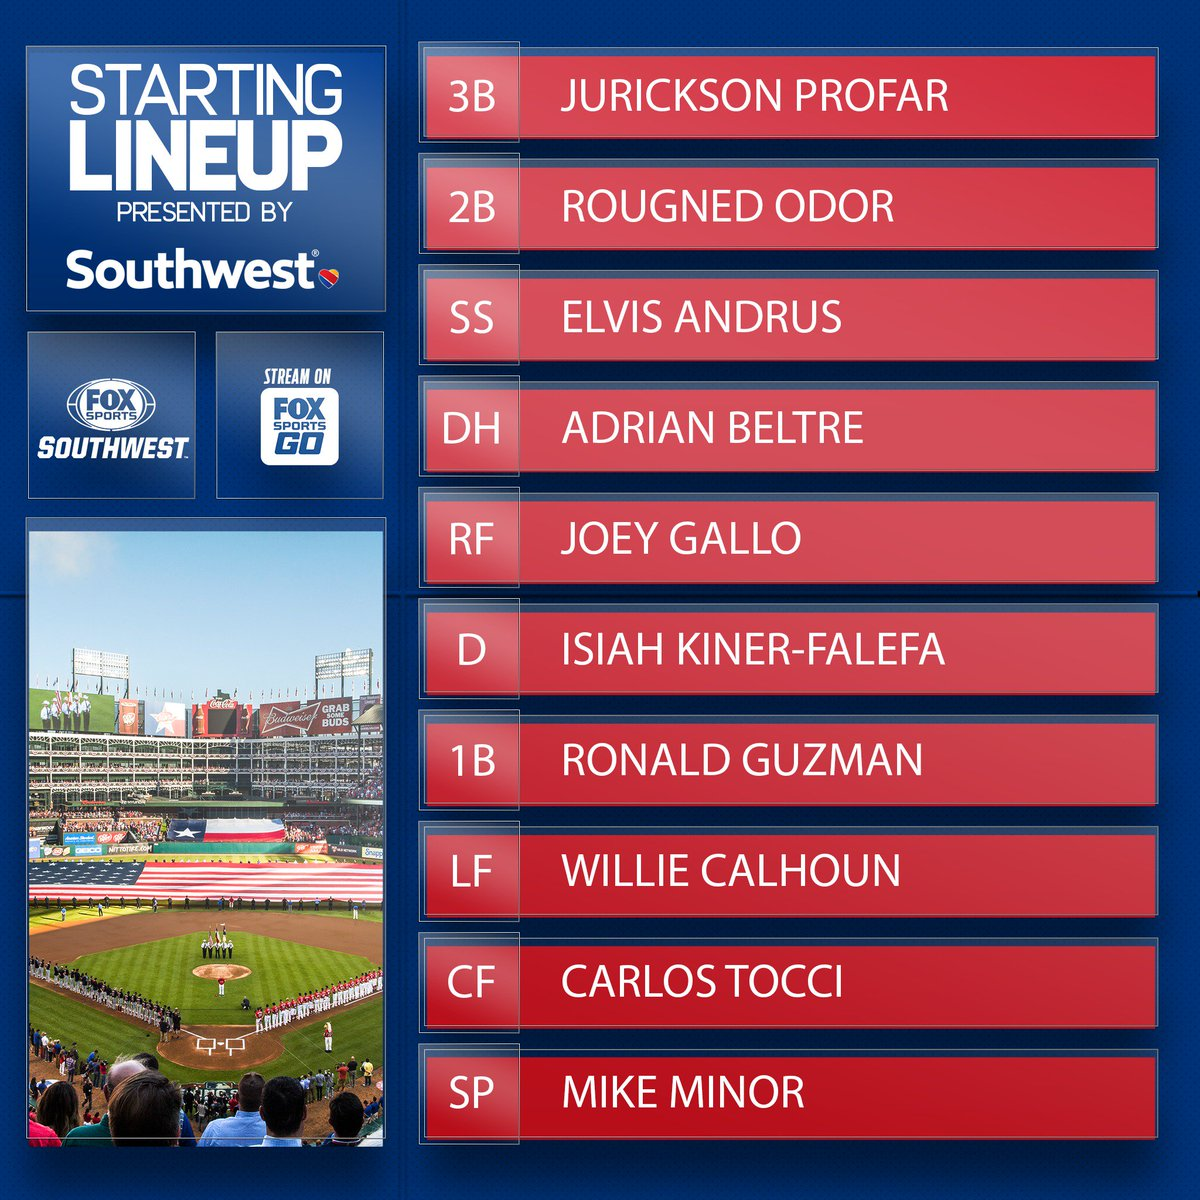 Take a look at the @Rangers lineup presented by the good folks at @SouthwestAir.  #SouthwestAIrlines | #TexasRangers